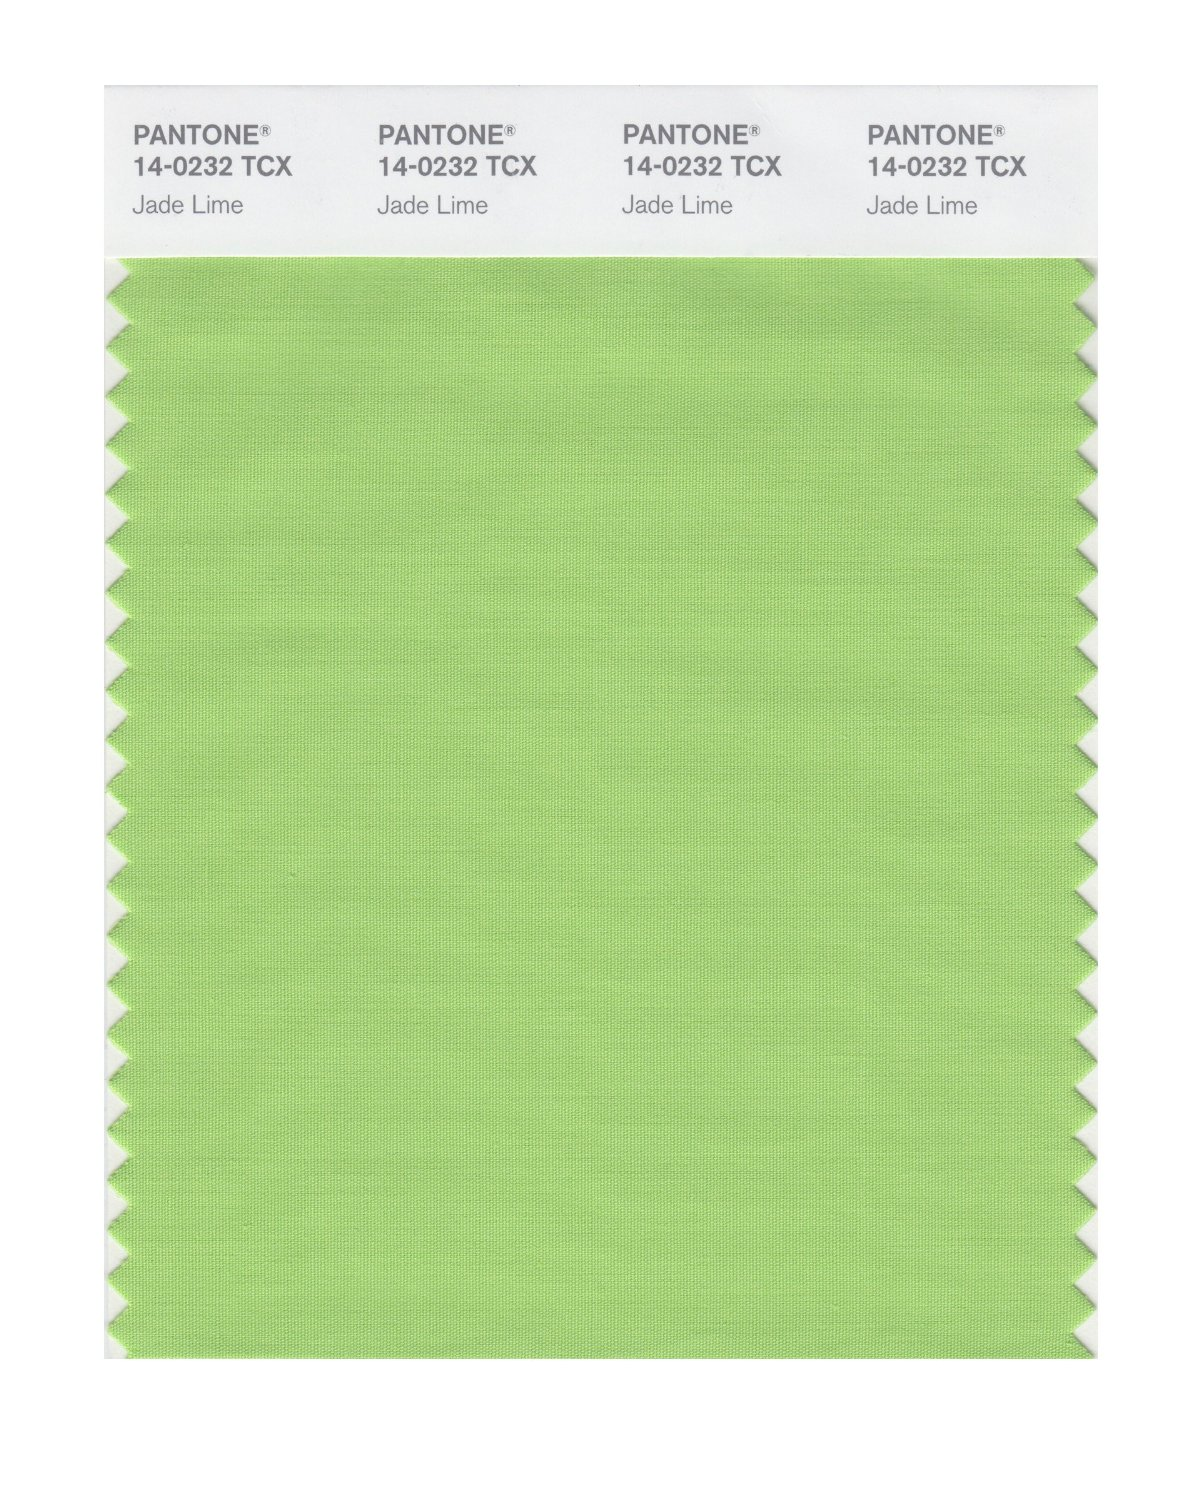 Pantone Smart Swatch 14-0232 Jade Lime